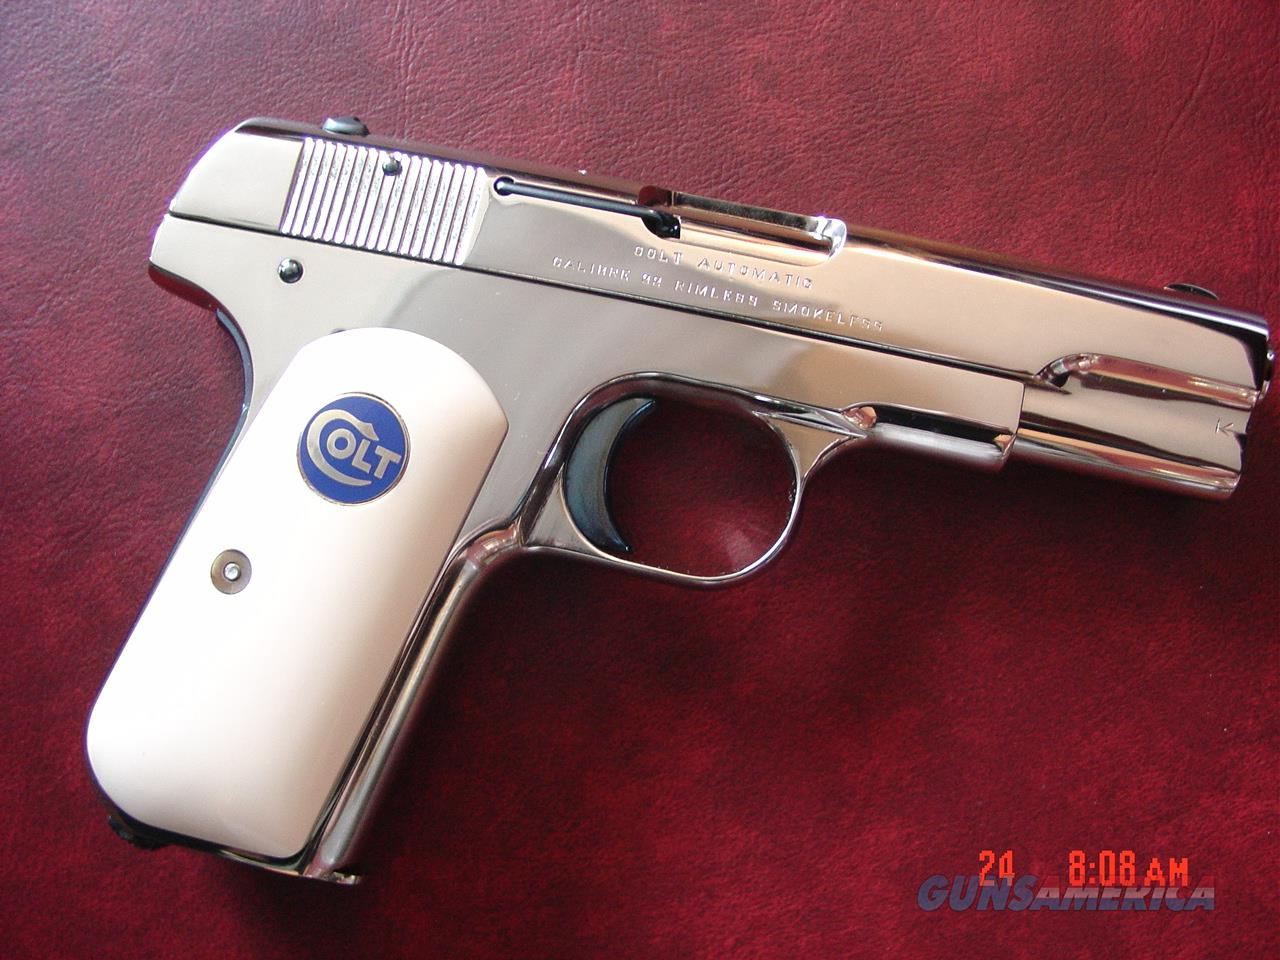 Colt 1903,32 auto,hammerless,fully refinished in bright mirror nickel, with fire blue accents,& bonded ivory grips, 103 years old !! a true showpiece !!  Guns > Pistols > Colt Automatic Pistols (.25, .32, & .380 cal)